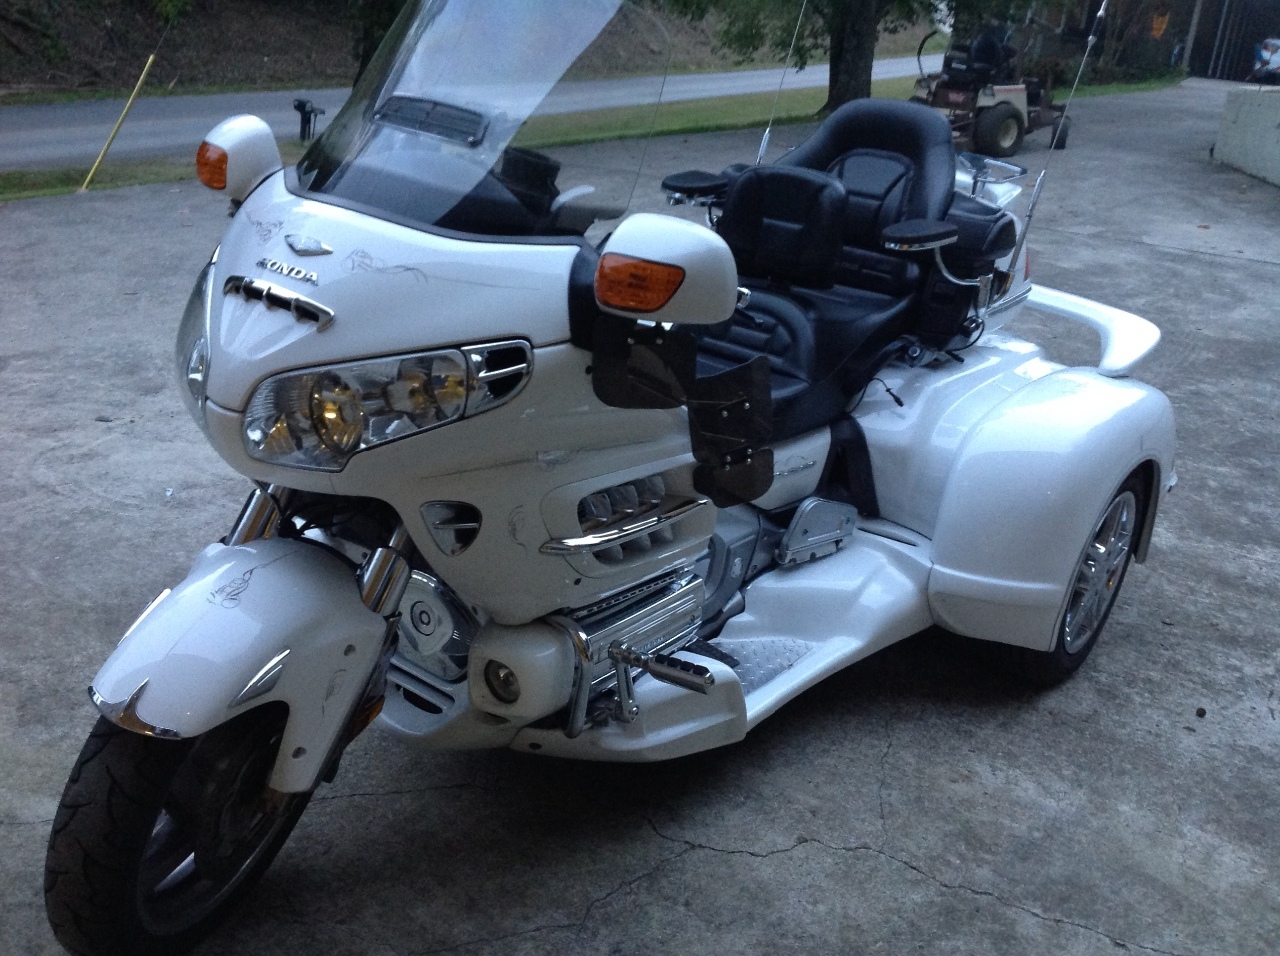 227 Honda Gold Wing 2001461 Motorcycles For Sale Cycle Trader 1200 Goldwing Wiring Diagram